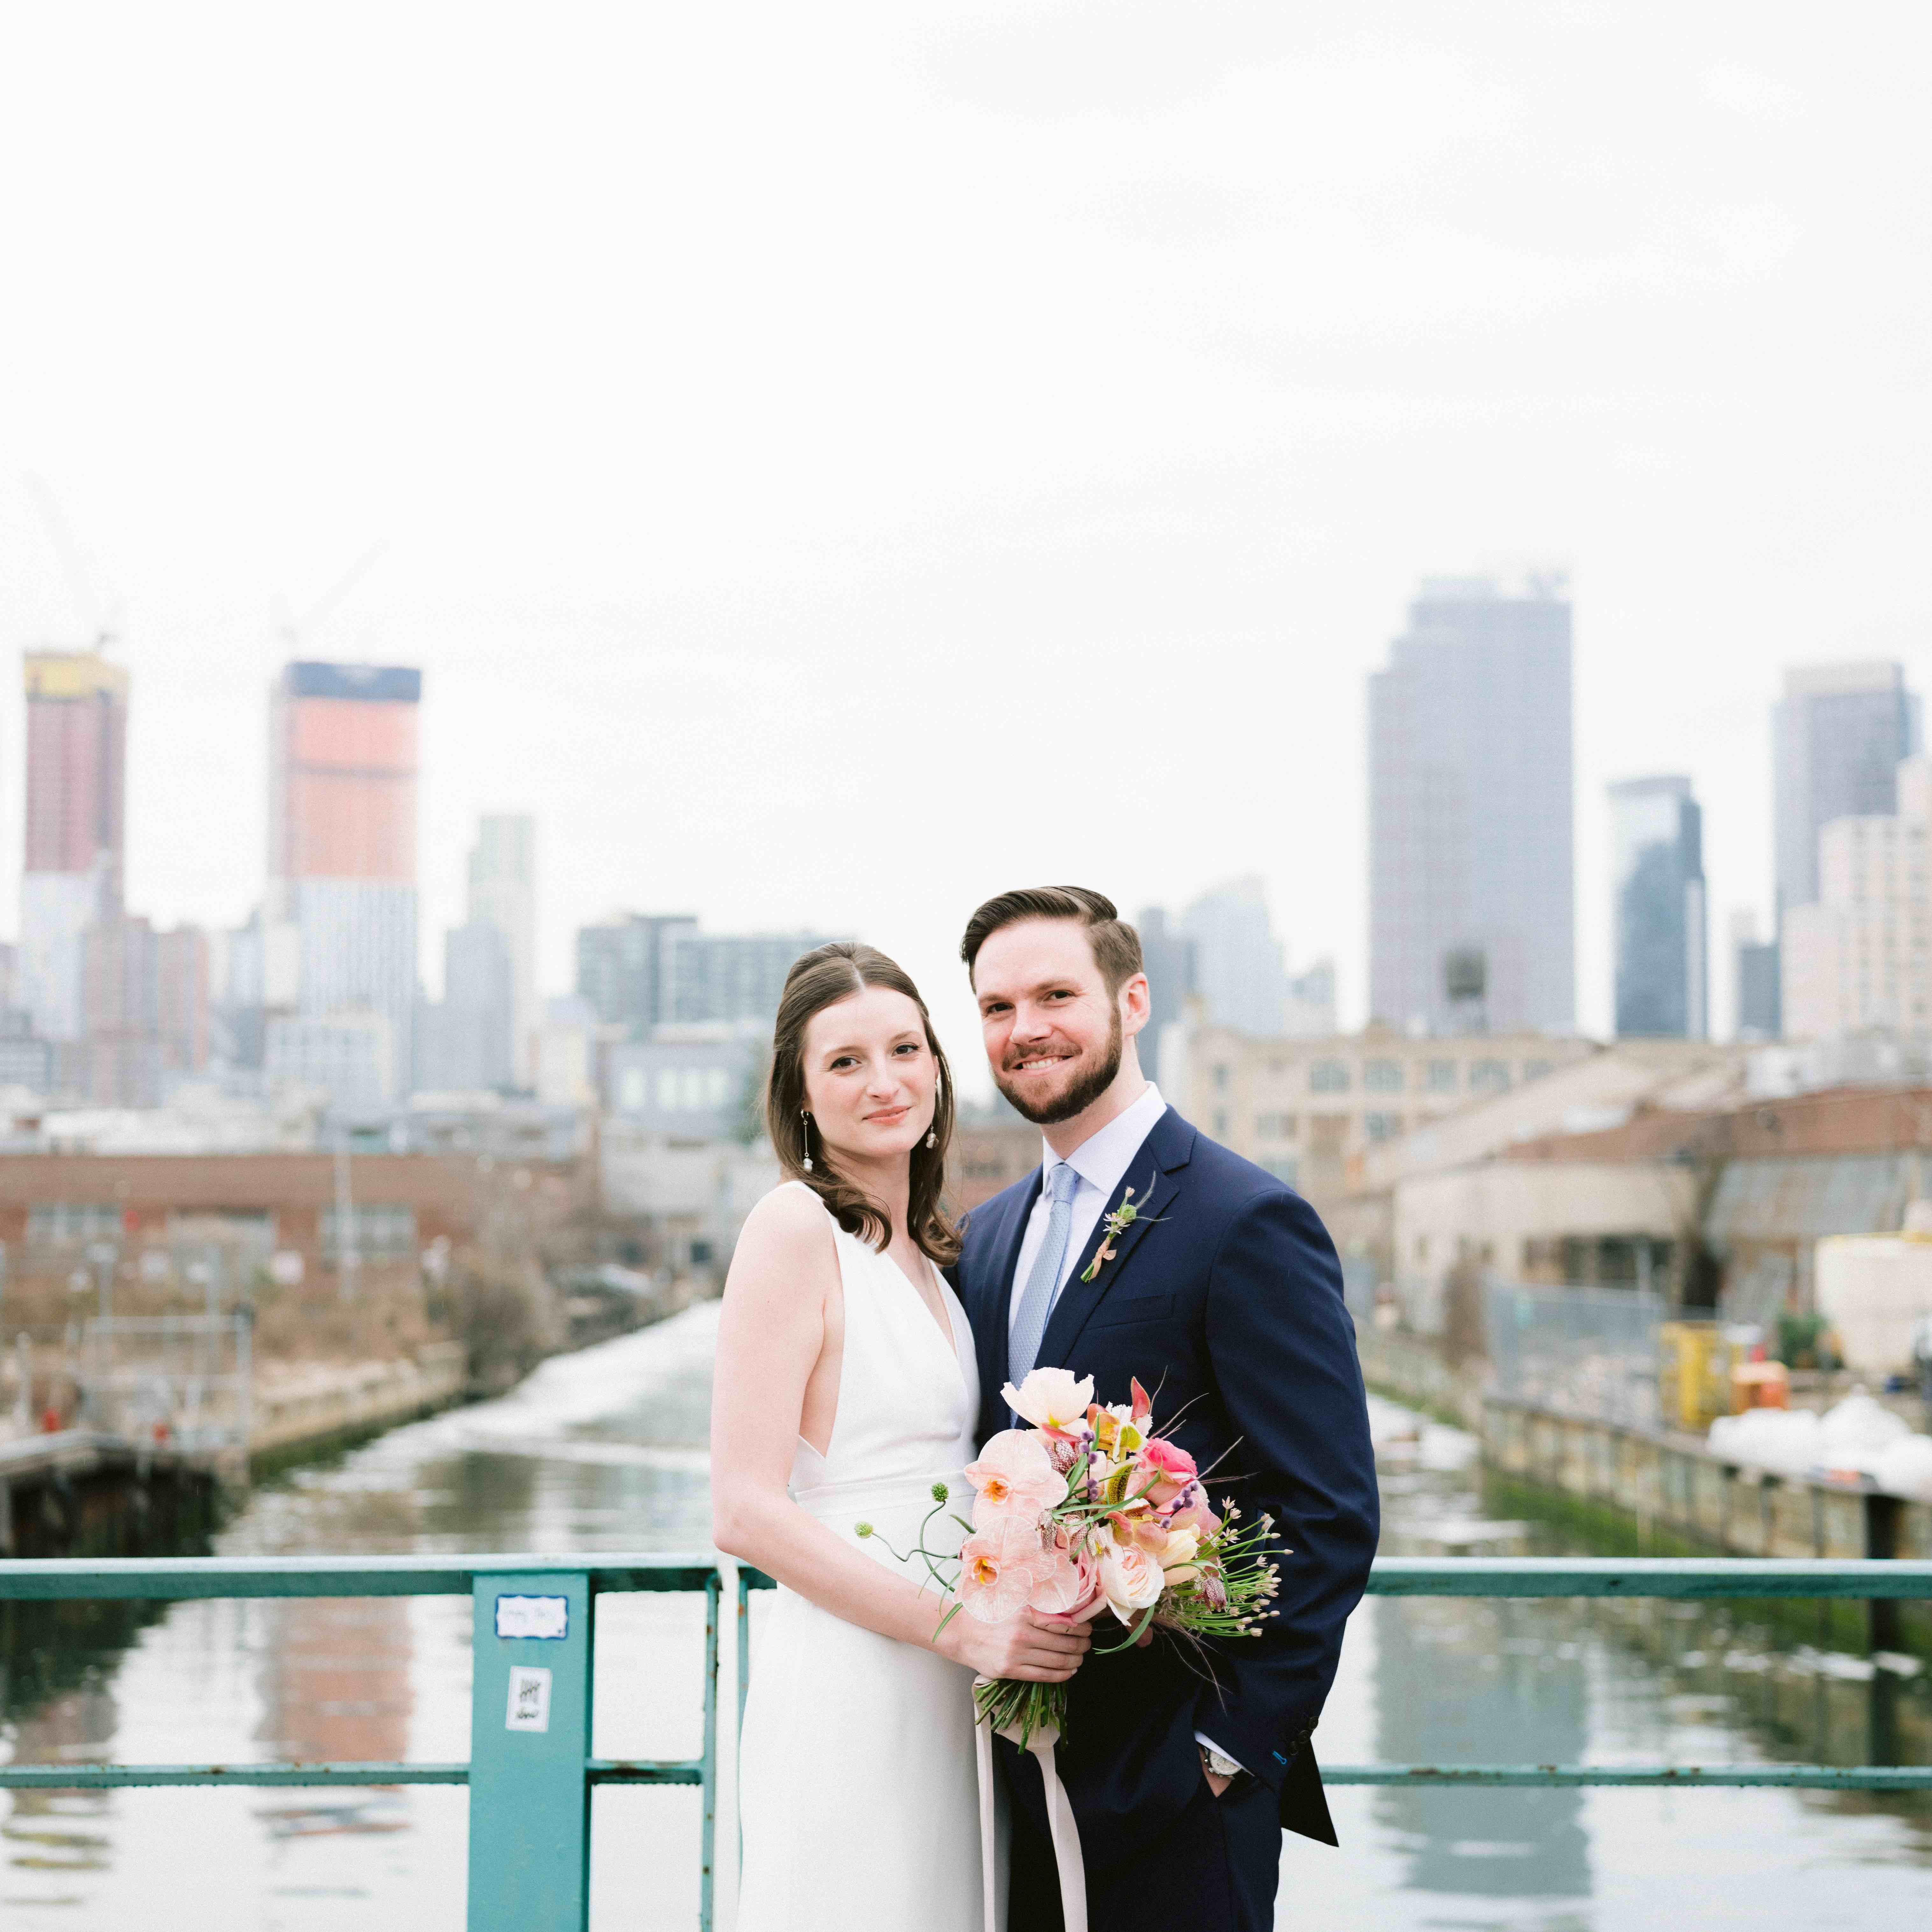 Best-501-Union-Wedding-Photography-Brooklyn-New-York16